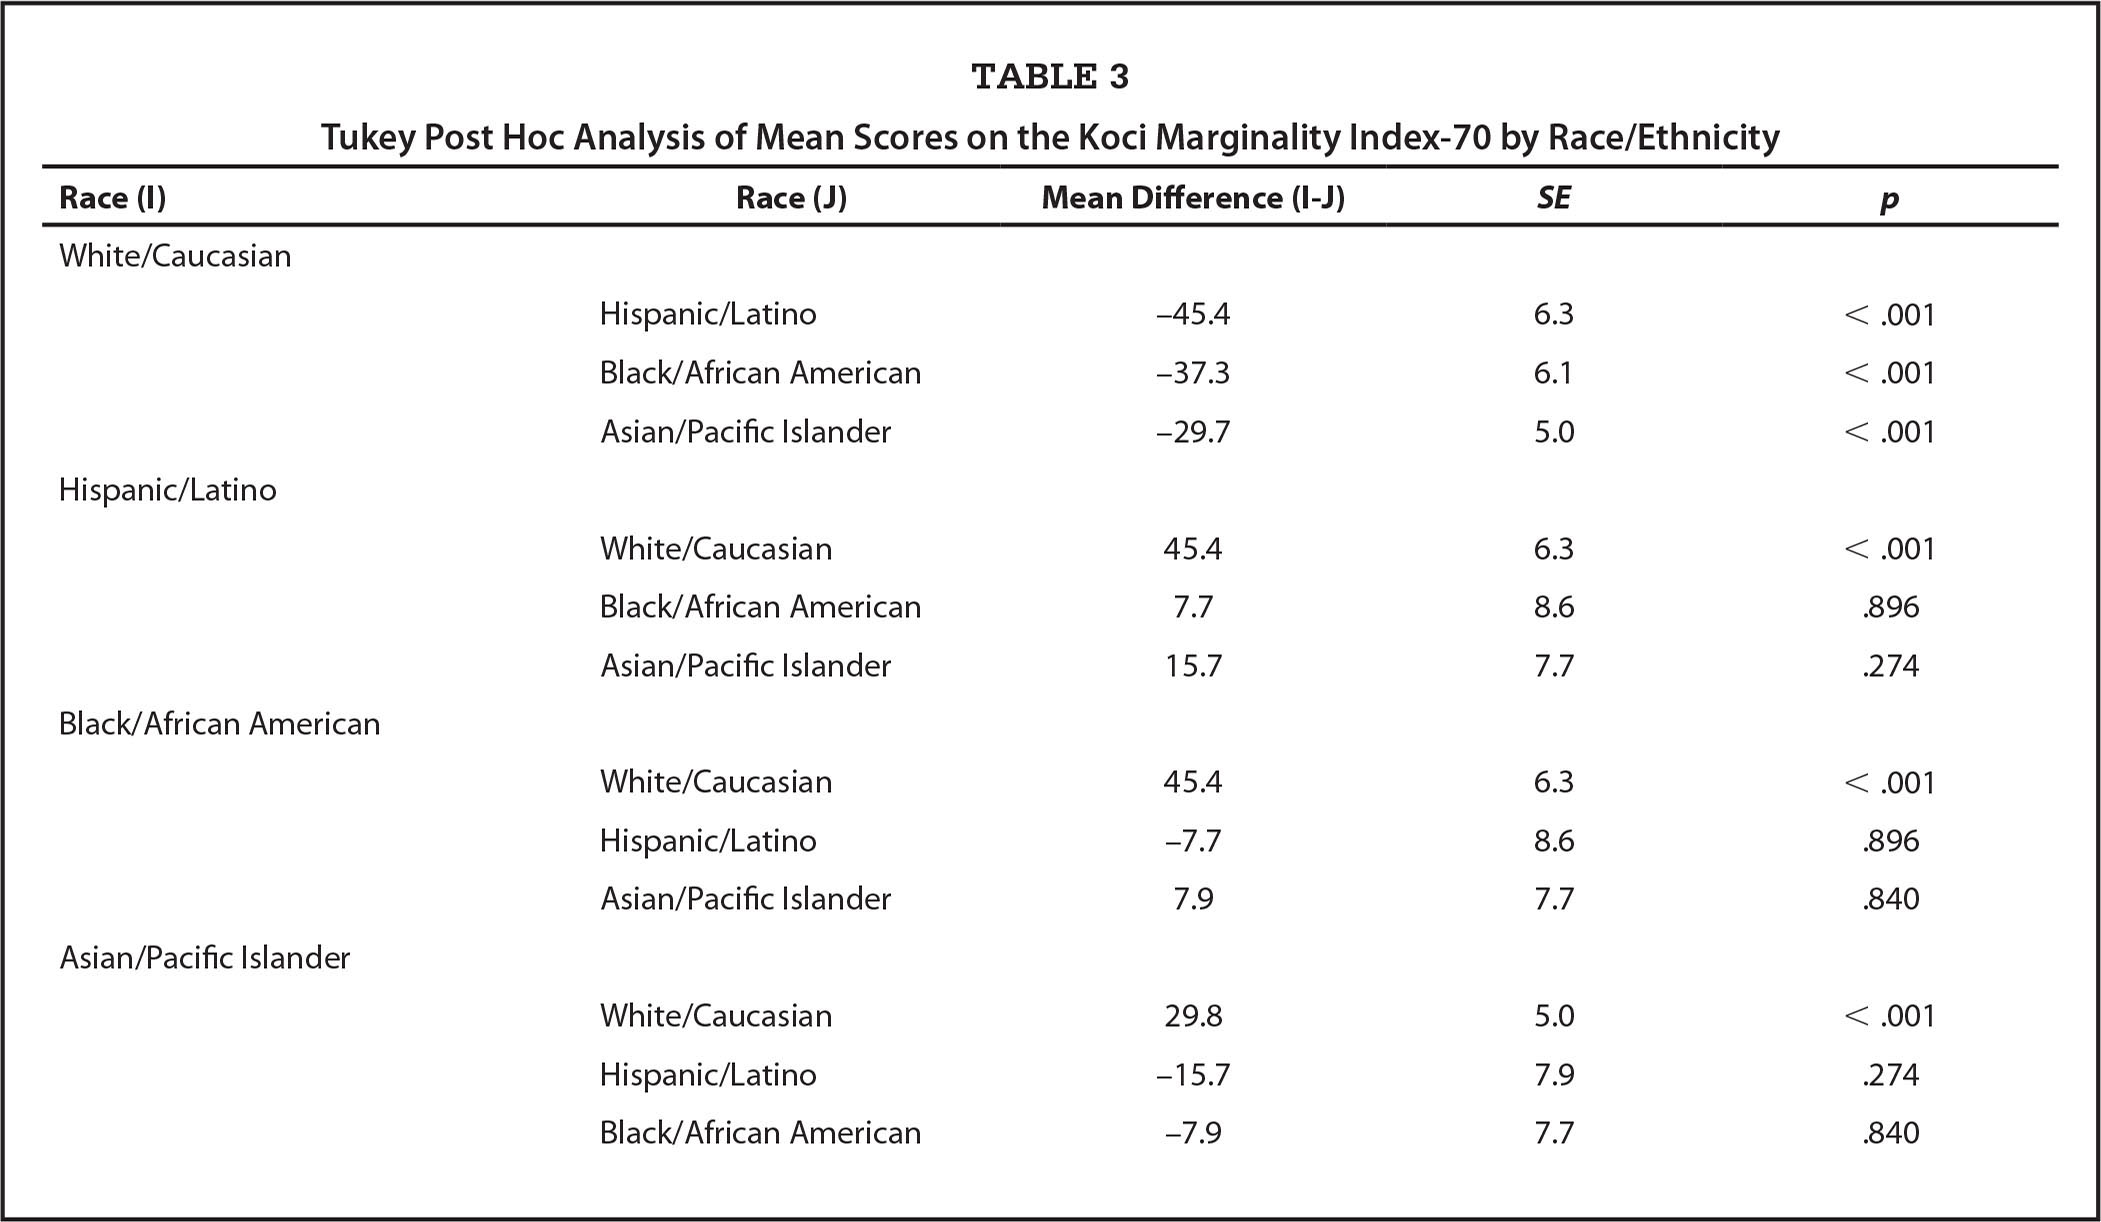 Tukey Post Hoc Analysis of Mean Scores on the Koci Marginality Index-70 by Race/Ethnicity